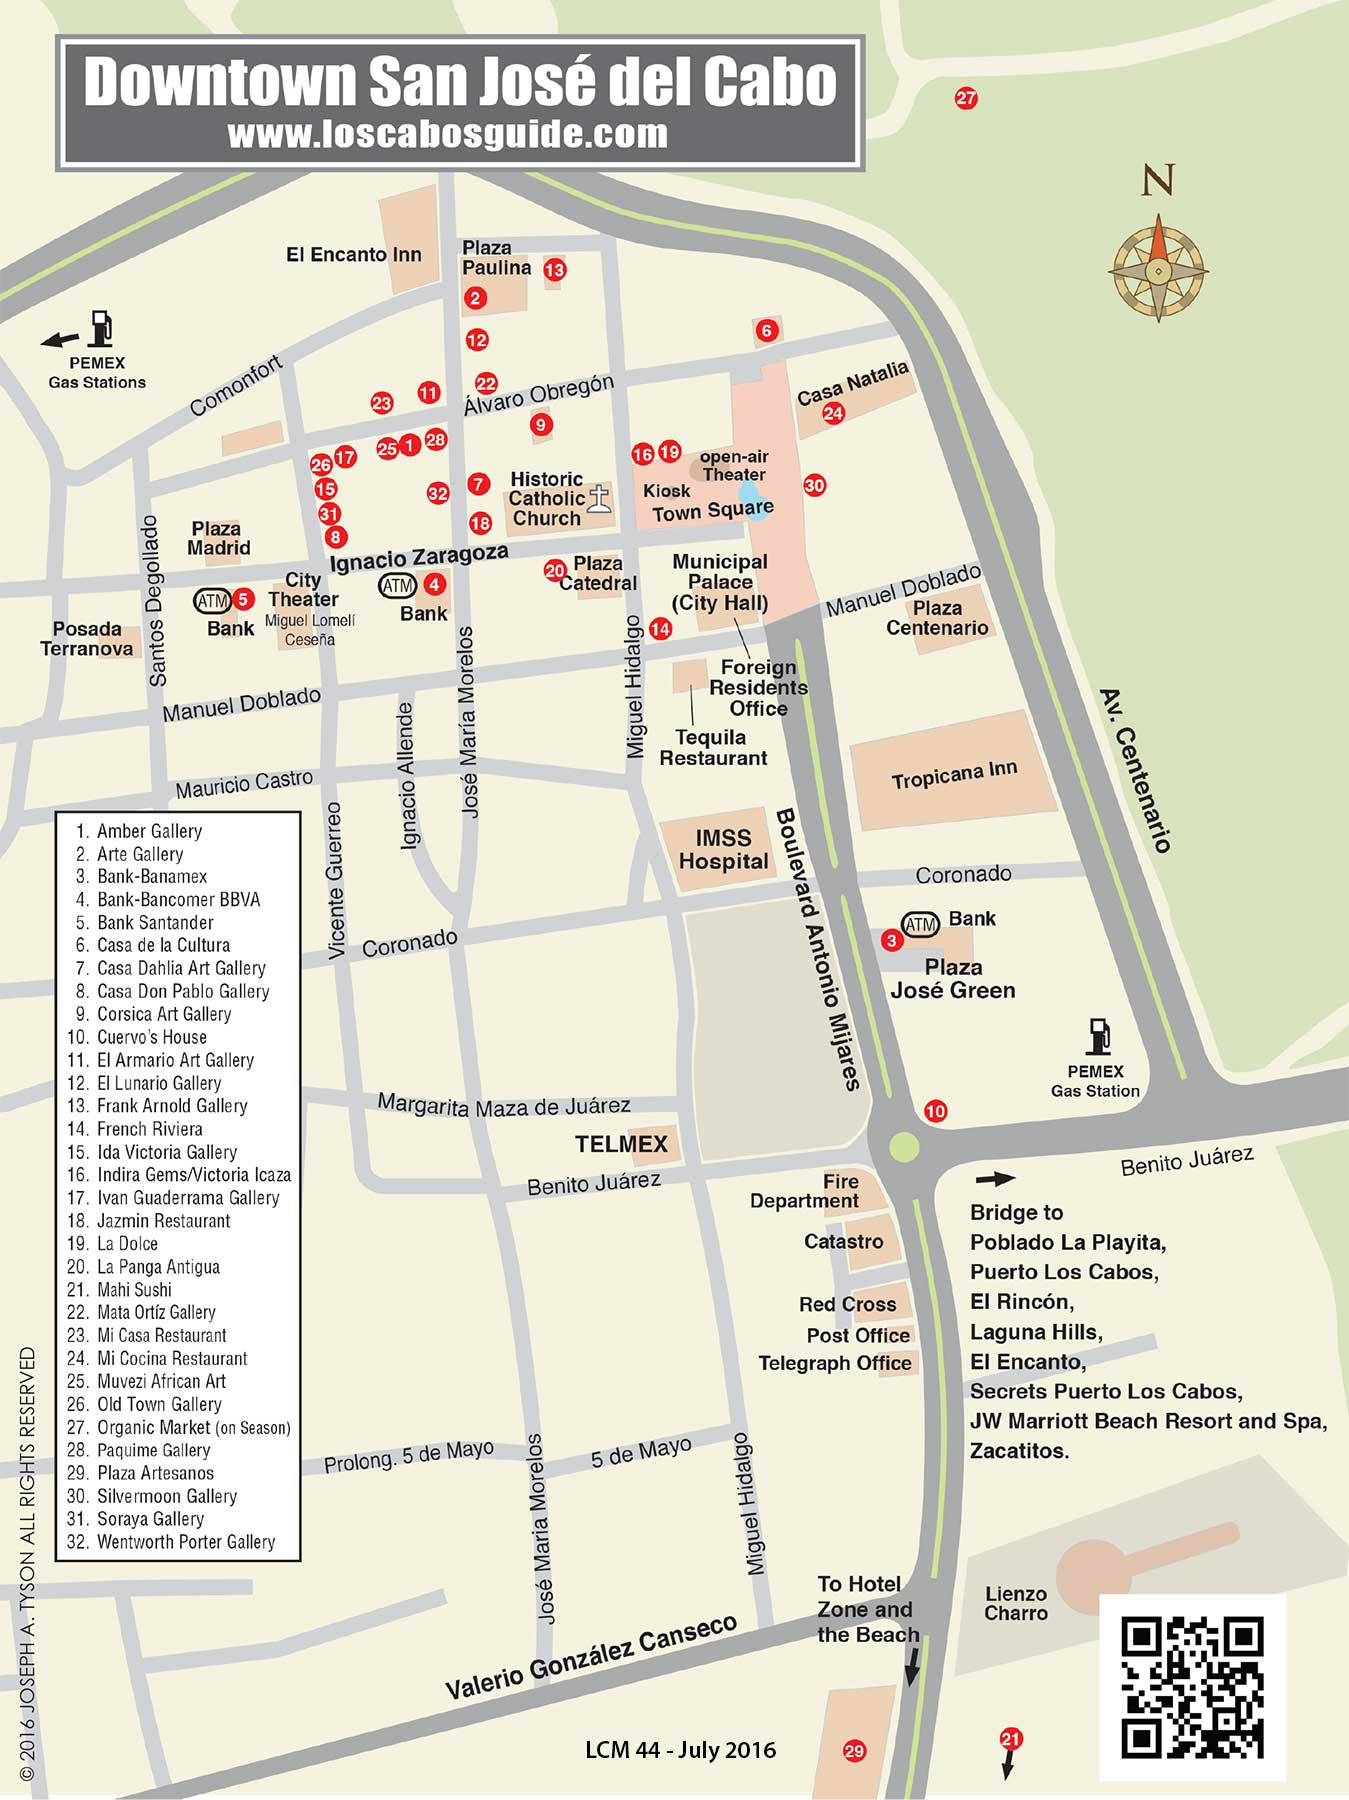 San Jose del Cabo Downtown Map – Tourist Attractions Map In San Jose